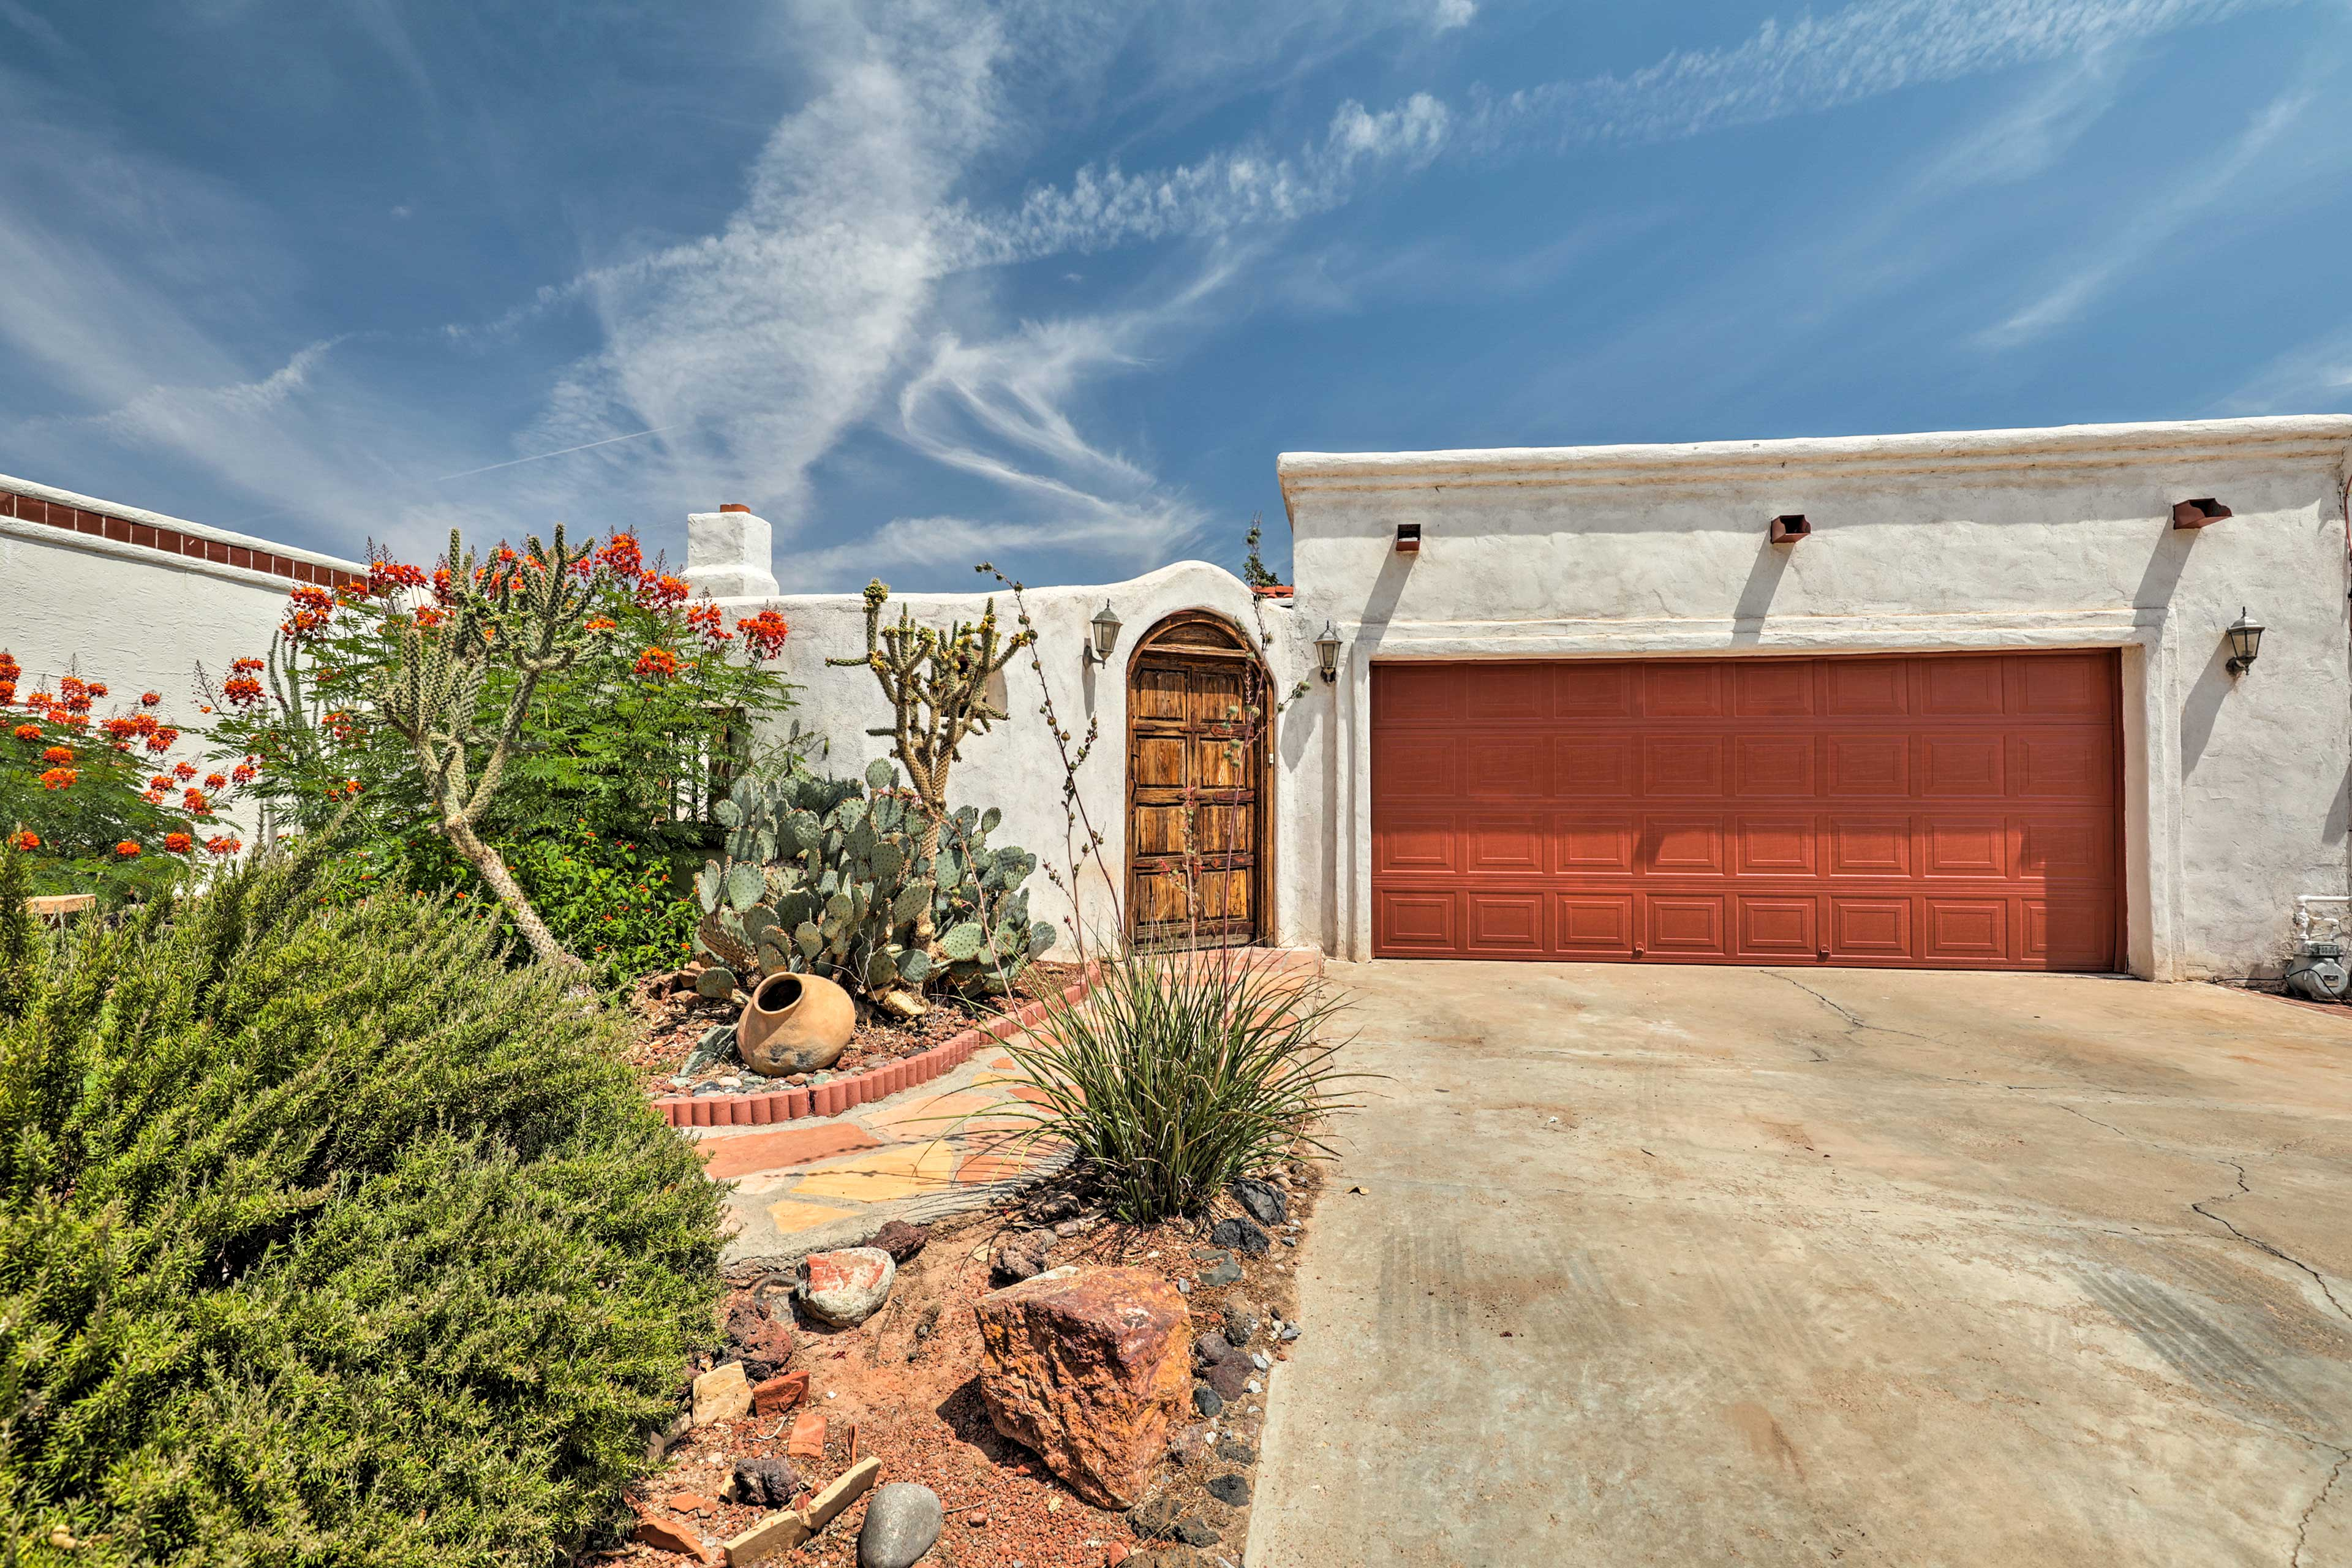 Tranquil desert landscaping surrounds this 3-bedroom home.